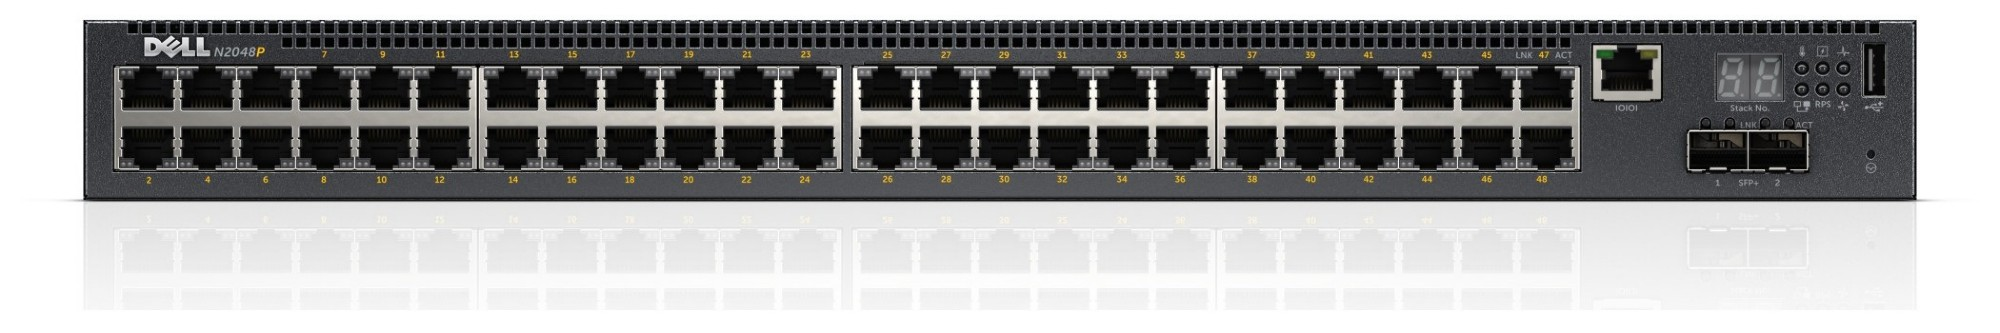 DELL POWERCONNECT N2048P MANAGED NETWORK SWITCH L2+ GIGABIT ETHERNET POWER OVER (POE) 1U BLACK